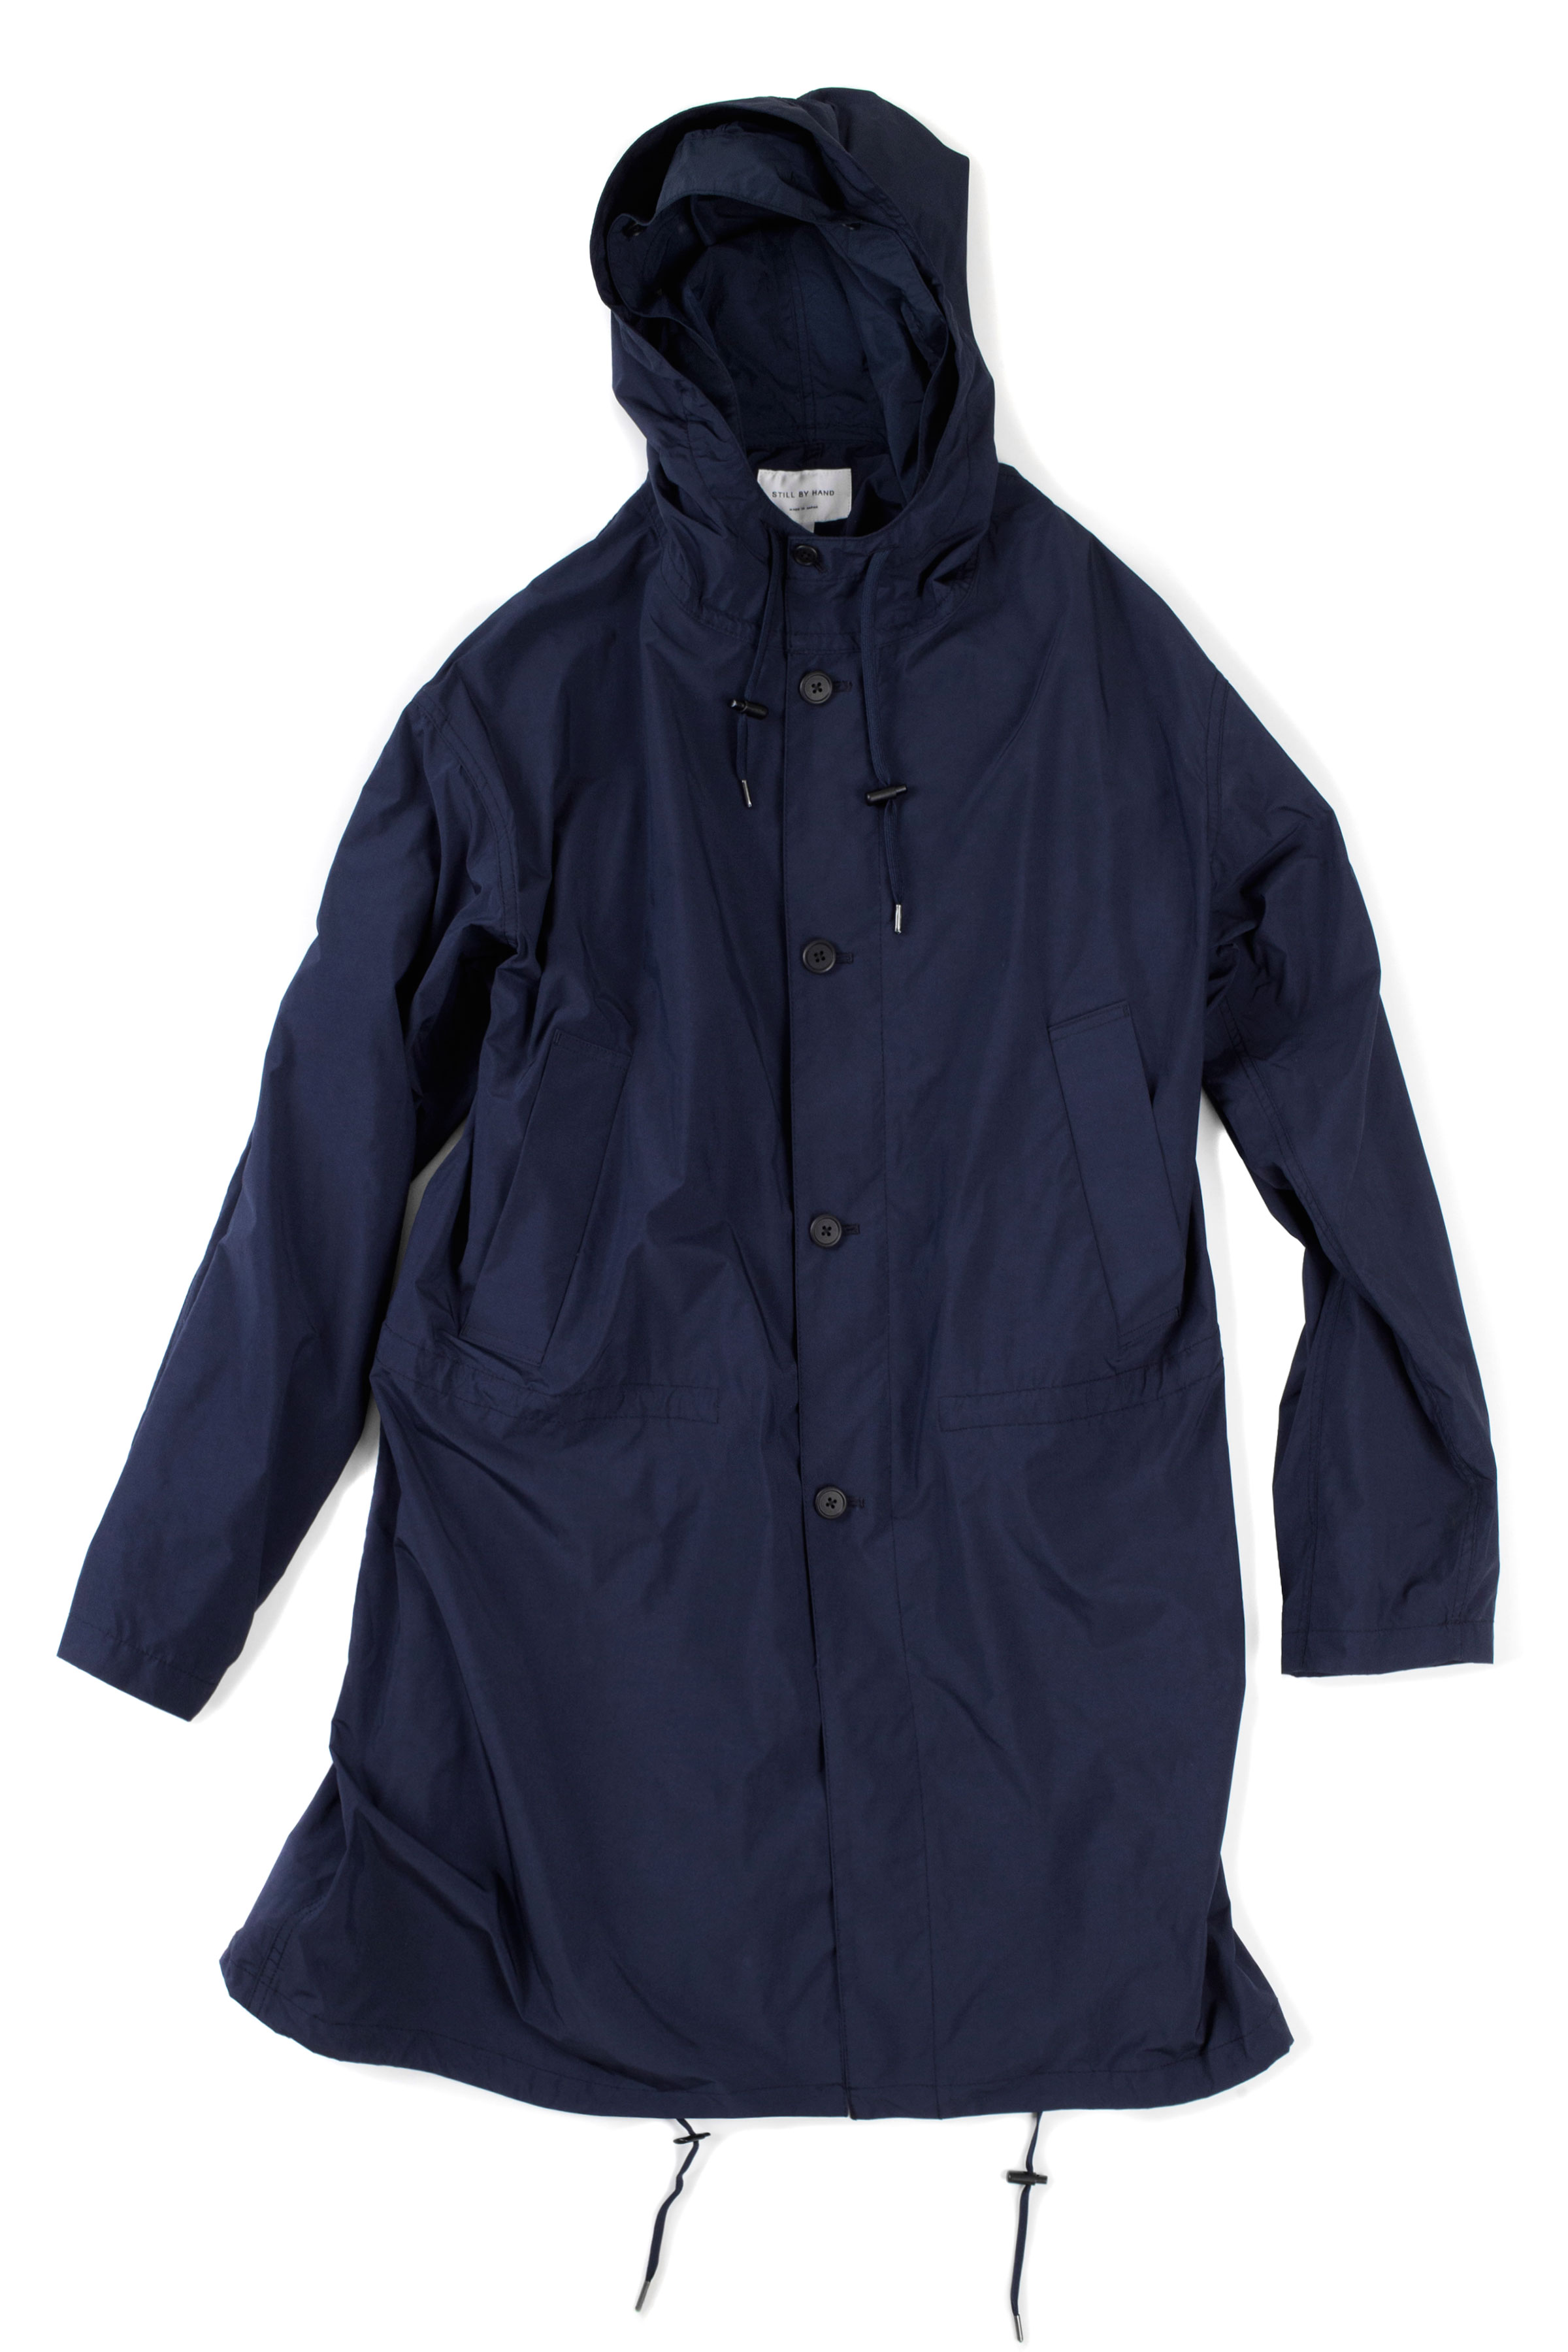 Still by Hand : CO0291OS Coat (Navy)